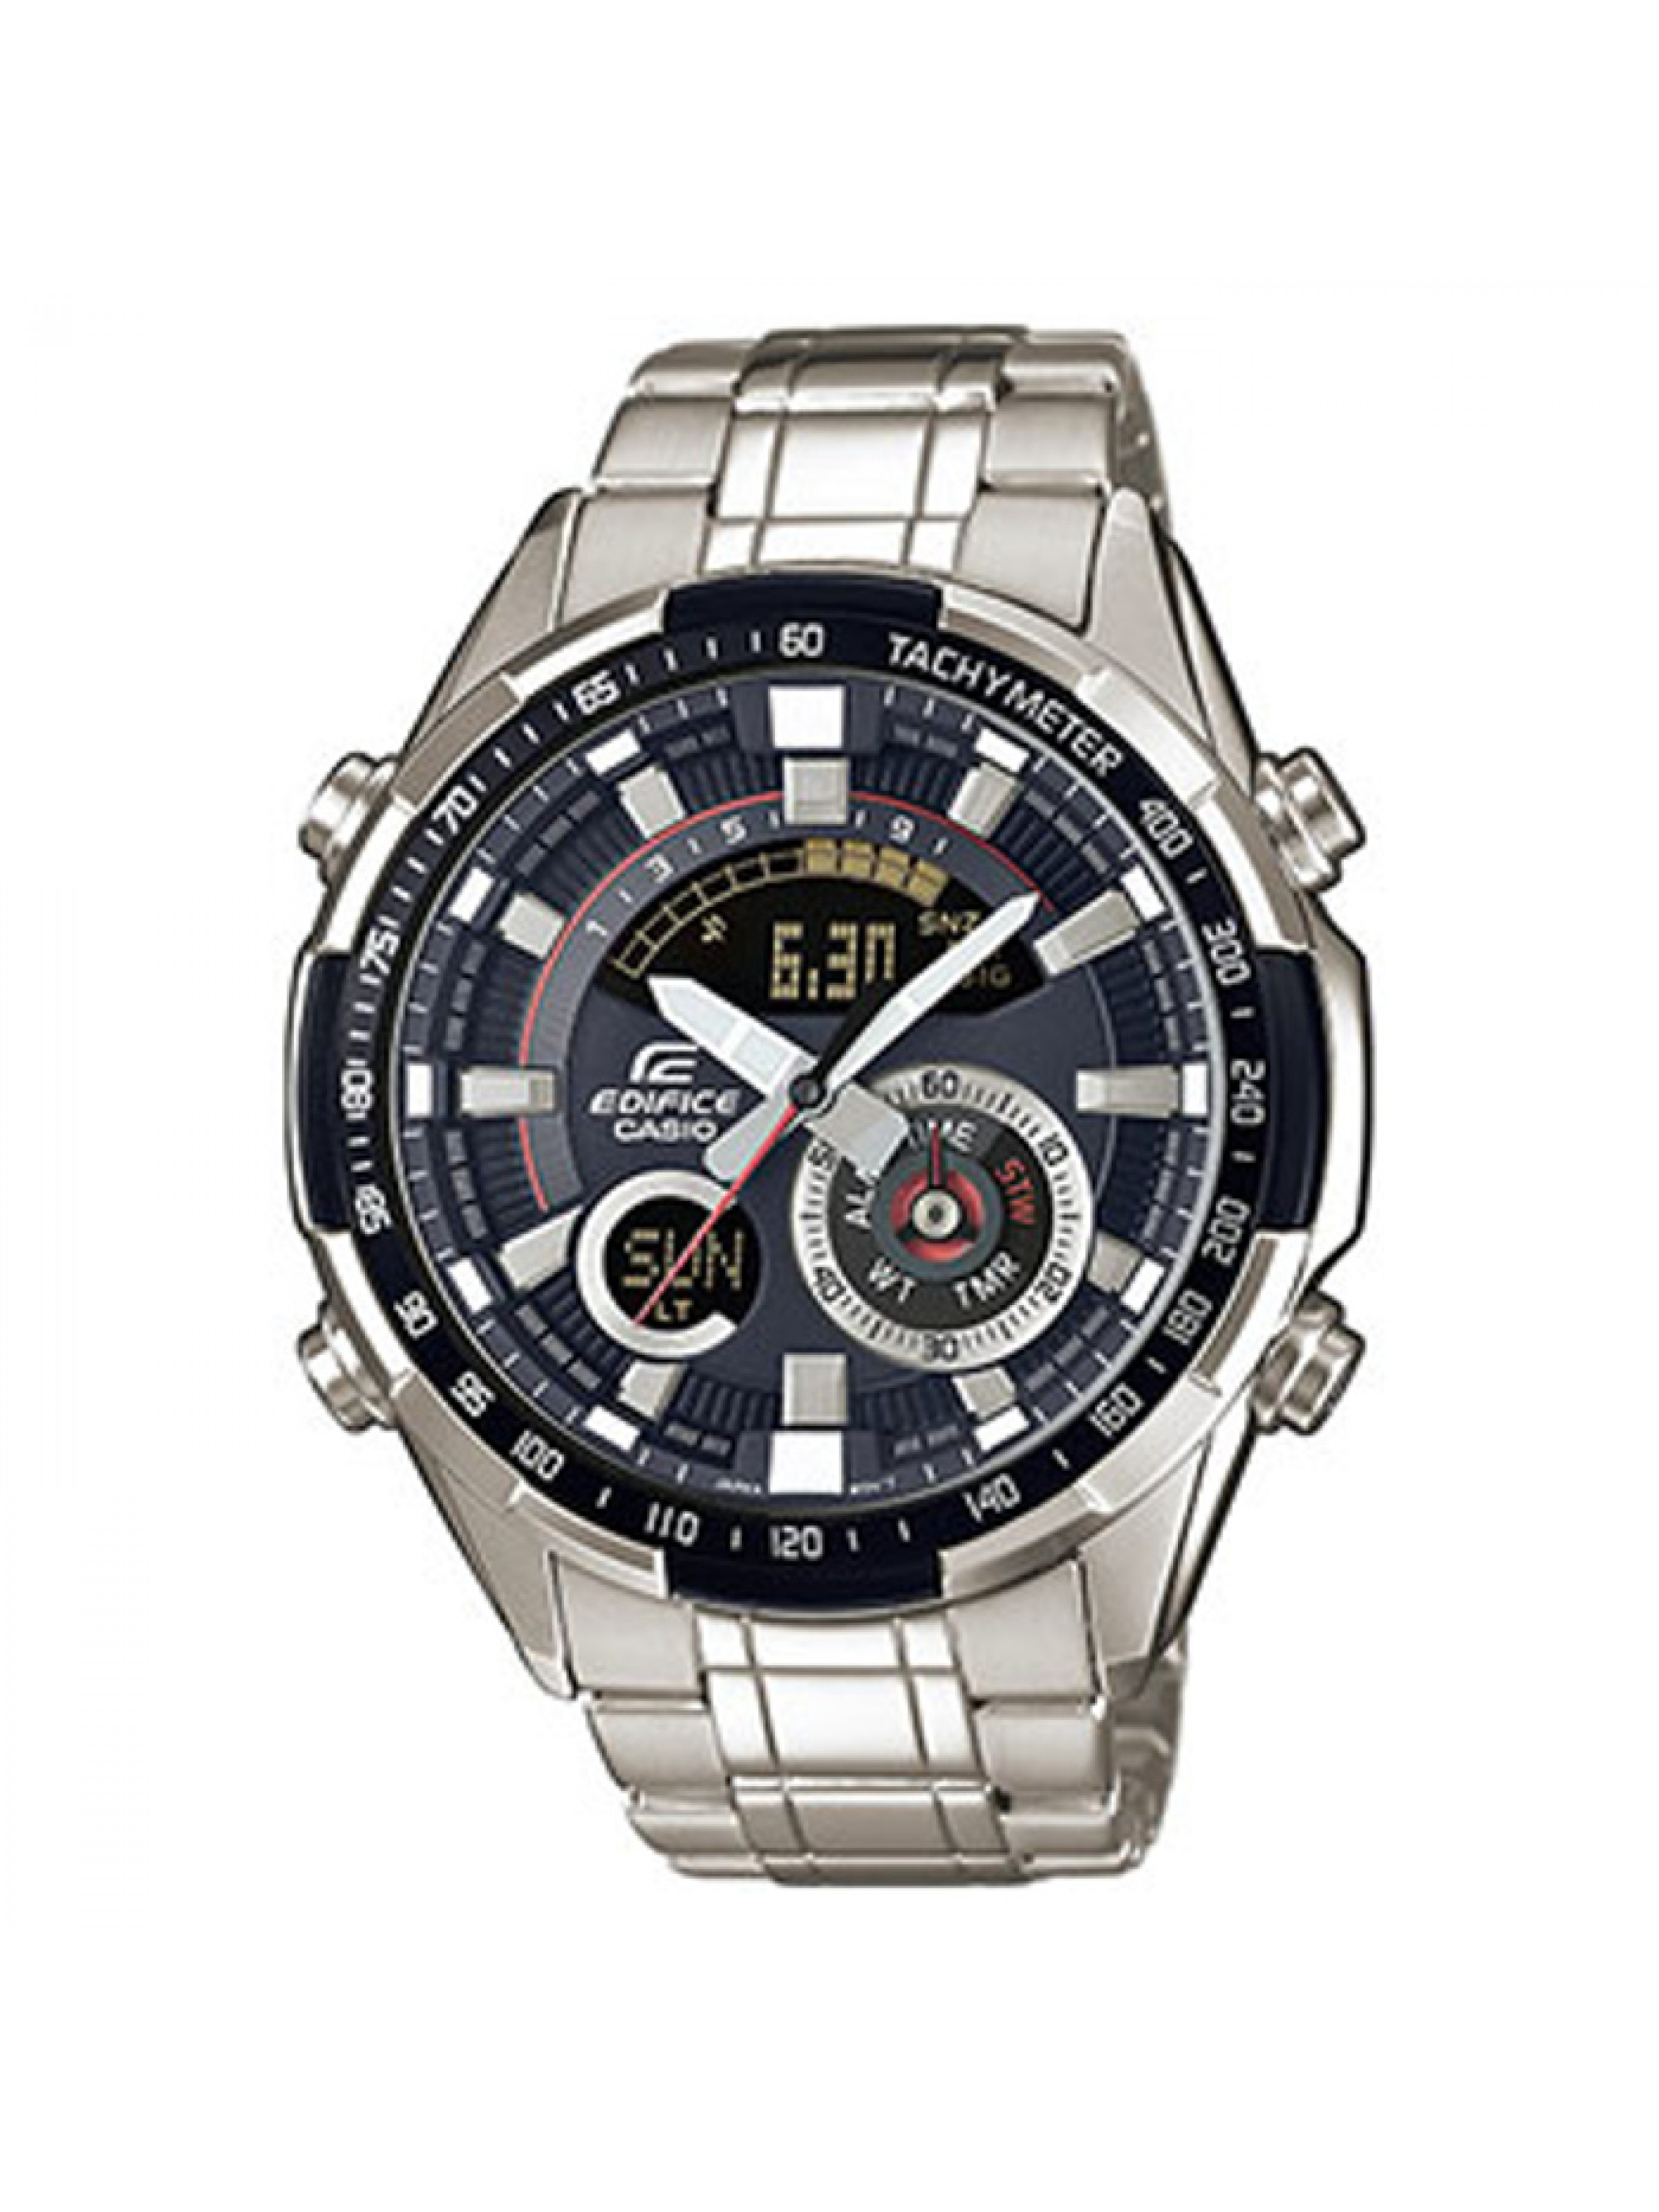 Edifice Casio Brands 539 L Chronograph Era 600d 1avuef